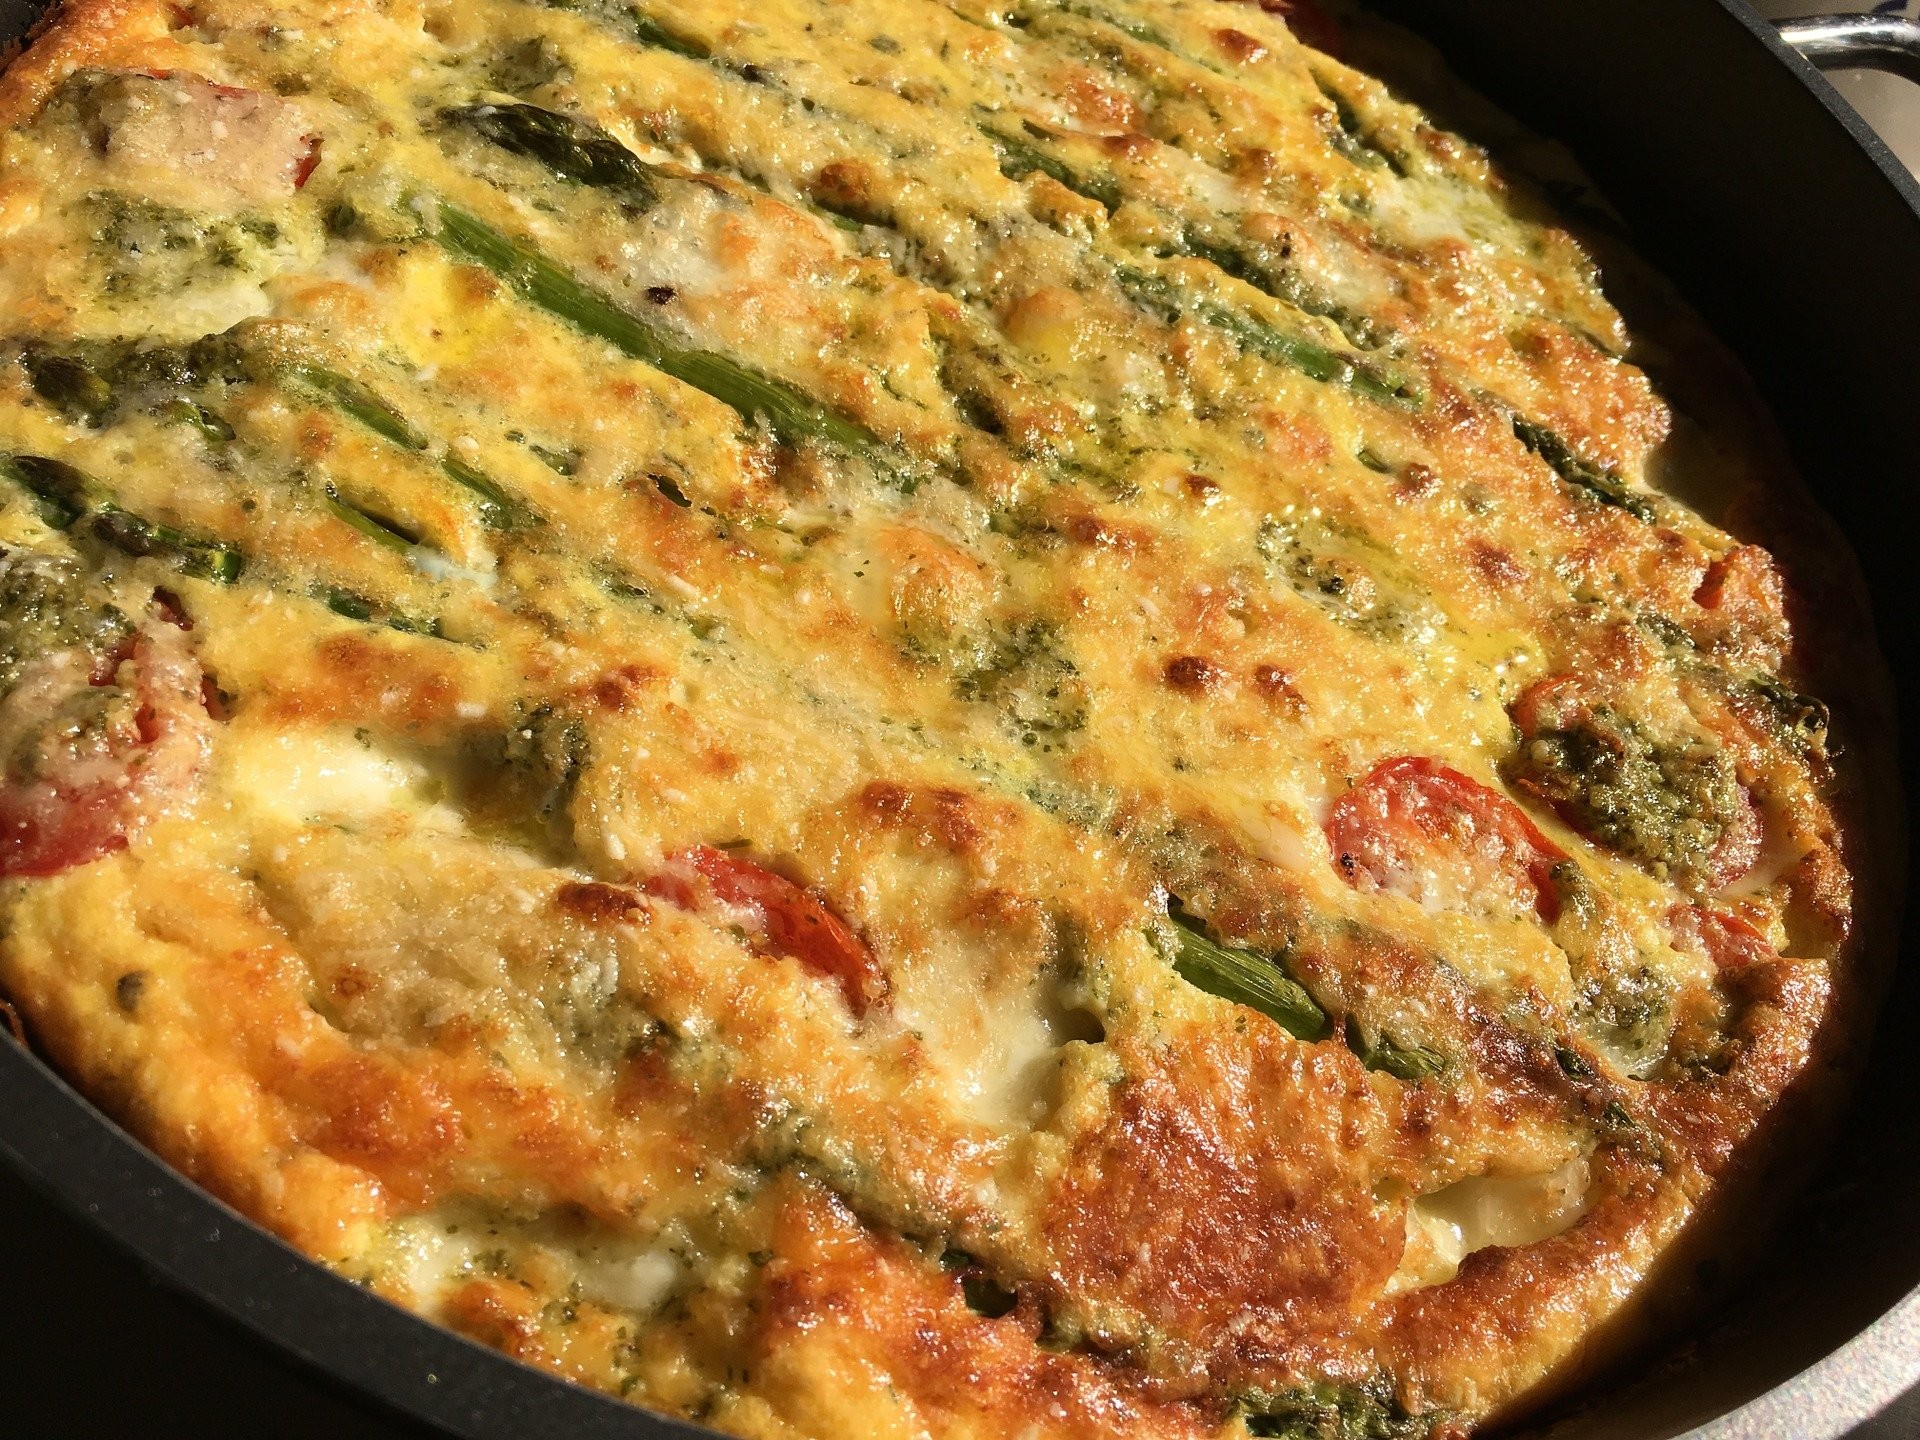 HAM AND ASPARAGUS EGG BAKE